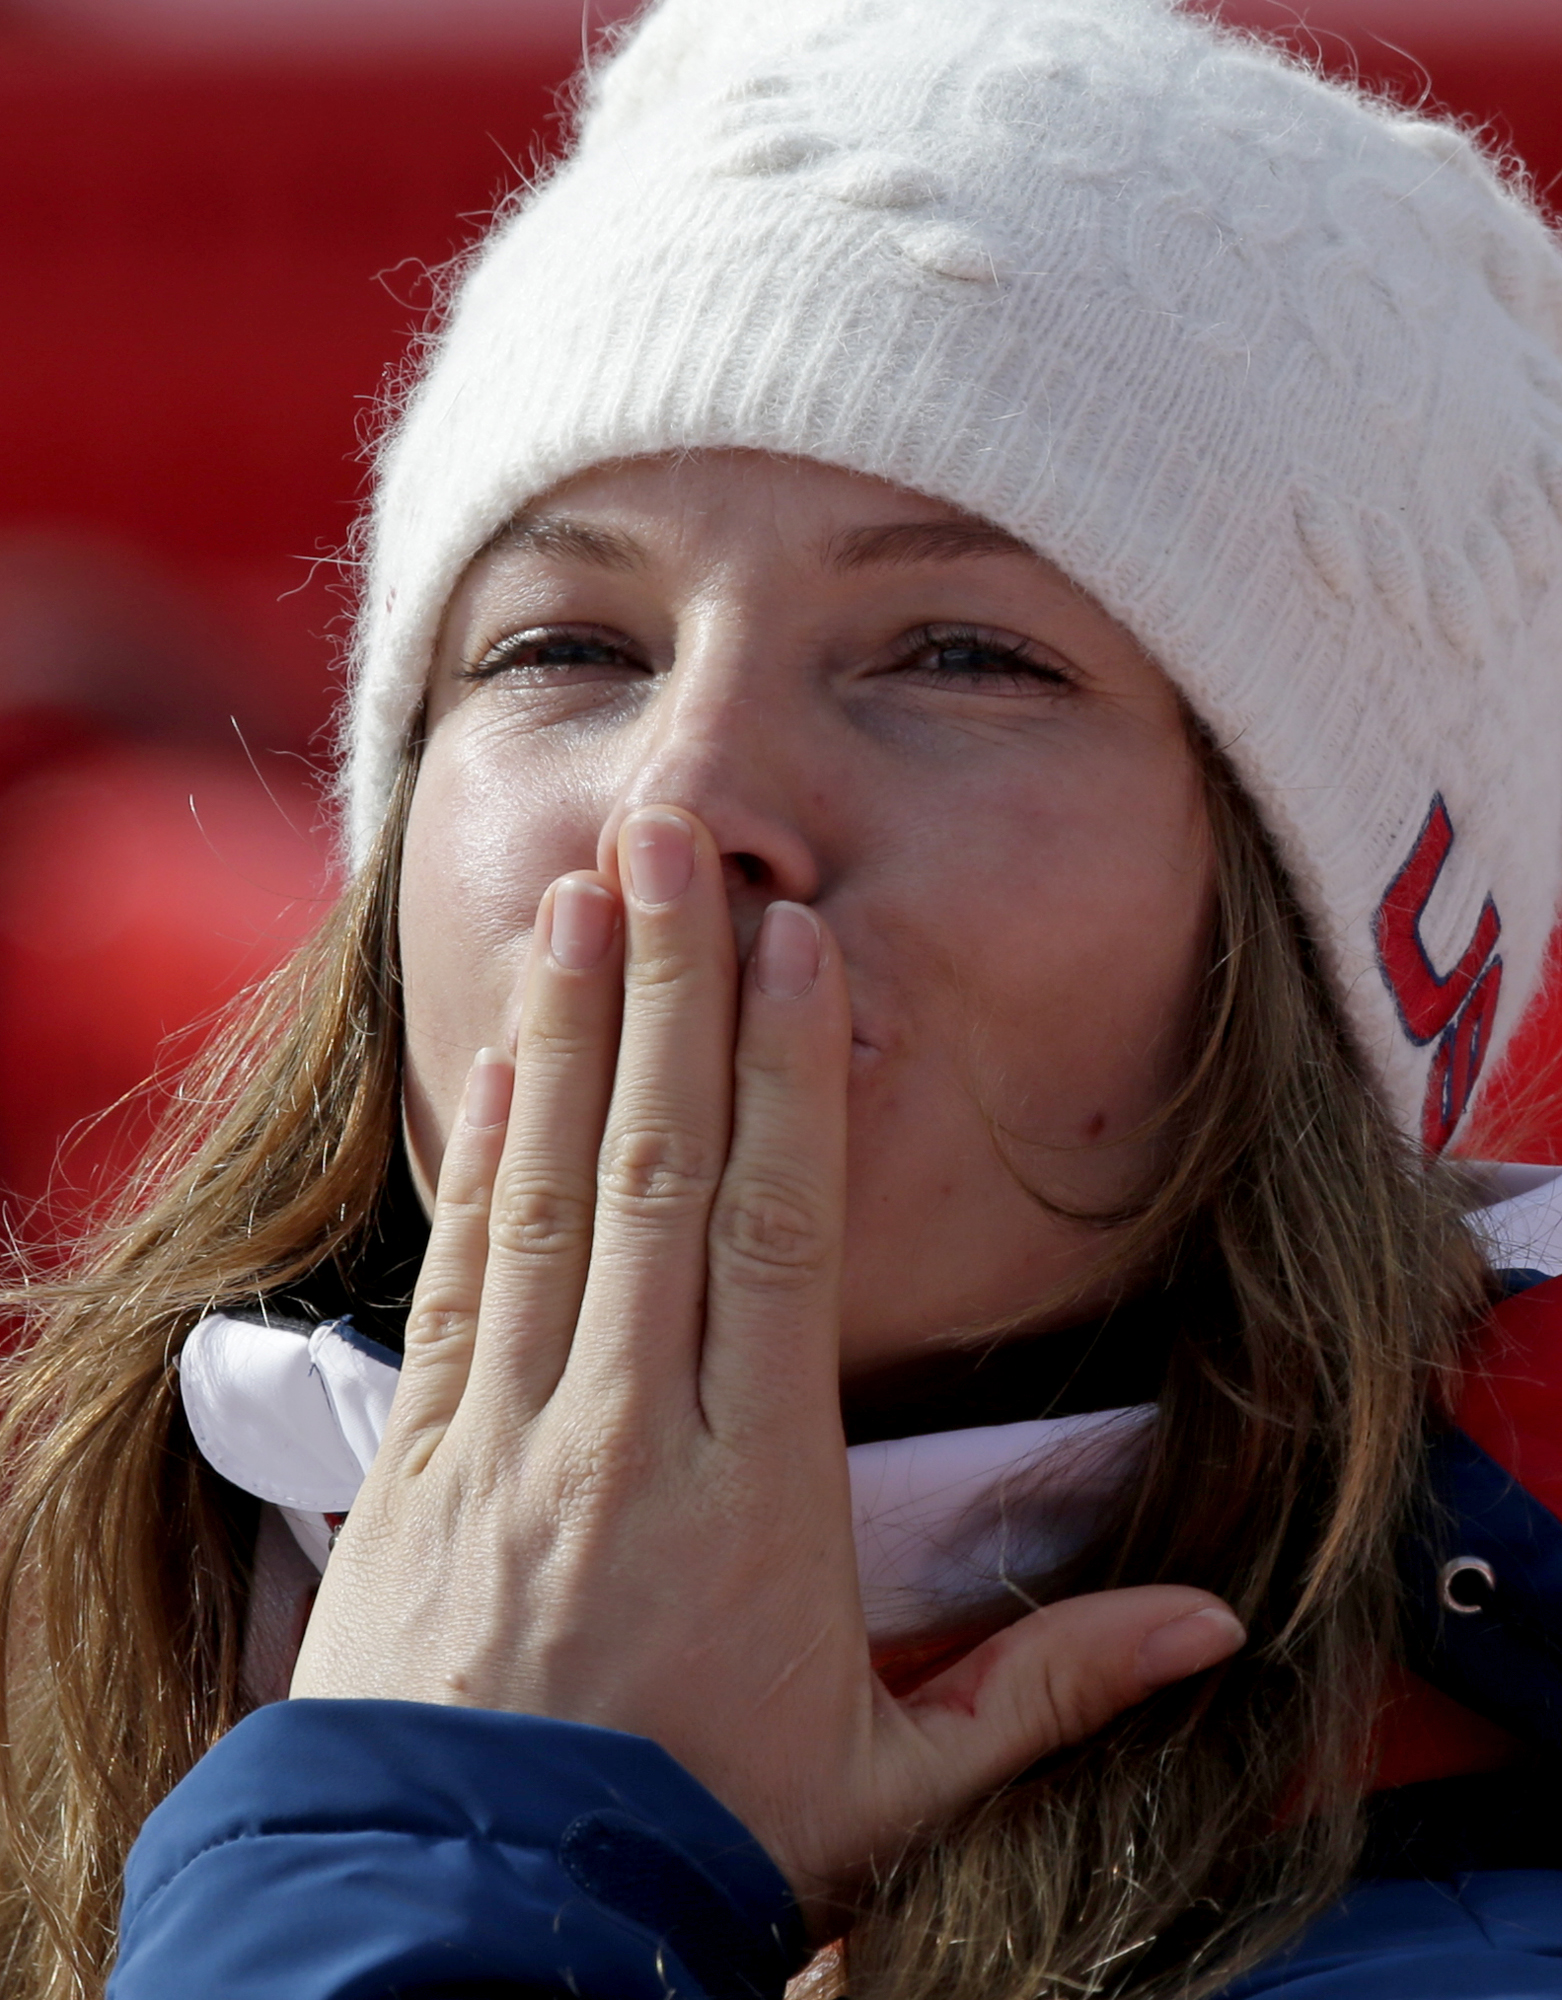 United States' Julia Mancuso blows a kiss as she leaves the finish area after the downhill portion of the women's supercombined at the Sochi 2014 Winter Olympics, Monday, Feb. 10, 2014, in Krasnaya Polyana, Russia. (AP Photo/Gero Breloer)